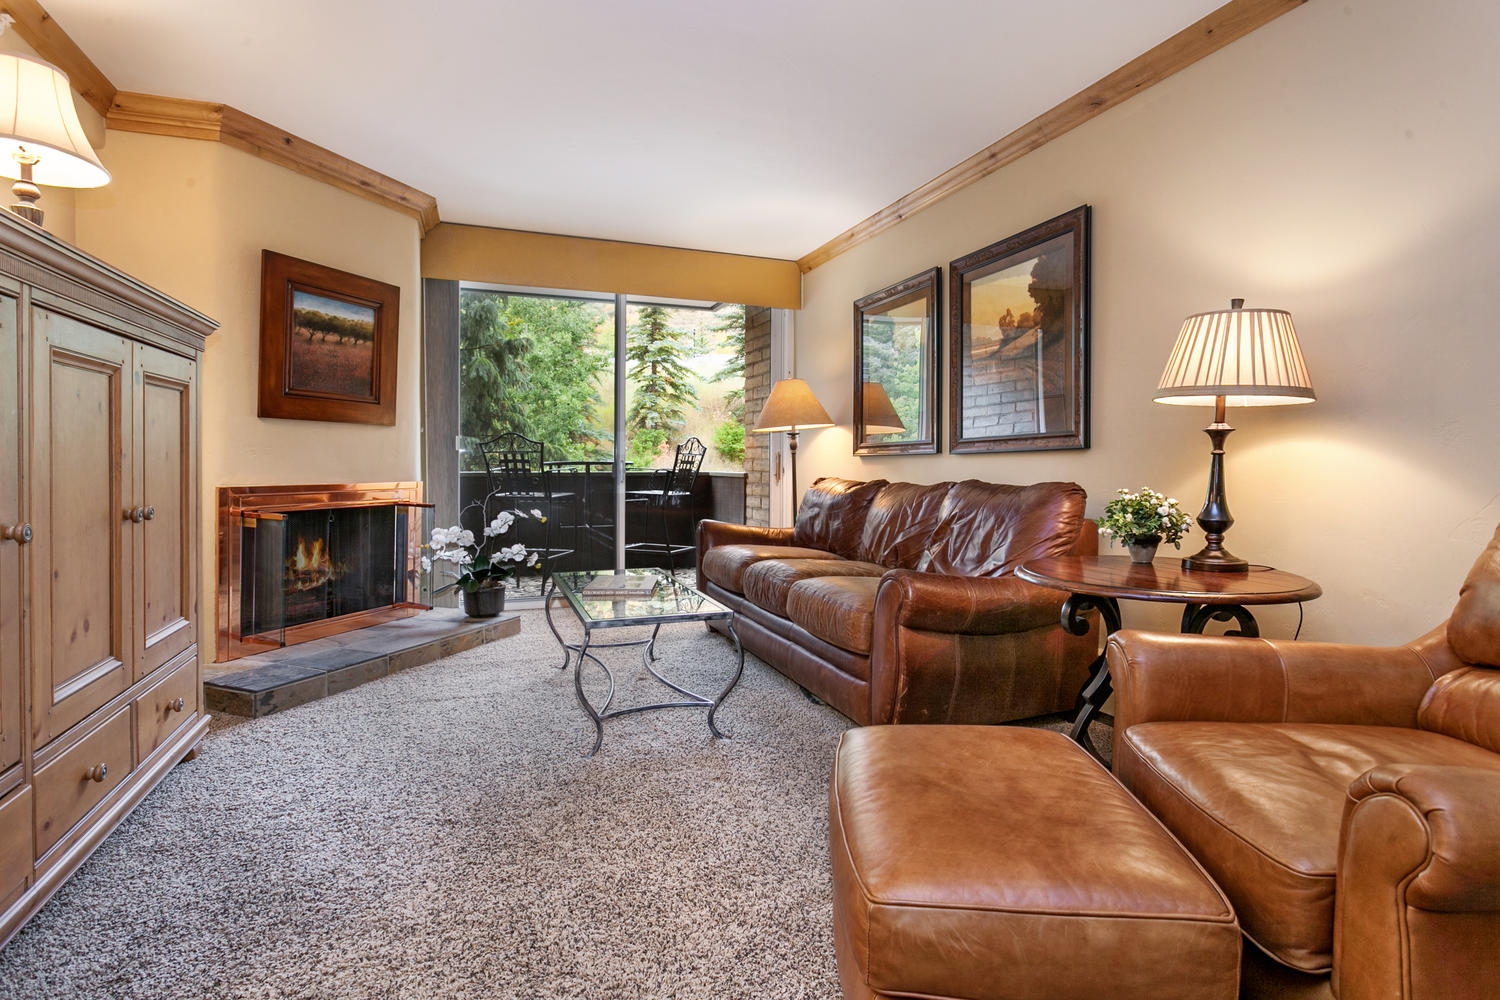 Condominium for Sale at Mountain Haus #221 292 E Meadow Drive #221 Vail Village, Vail, Colorado, 81657 United States